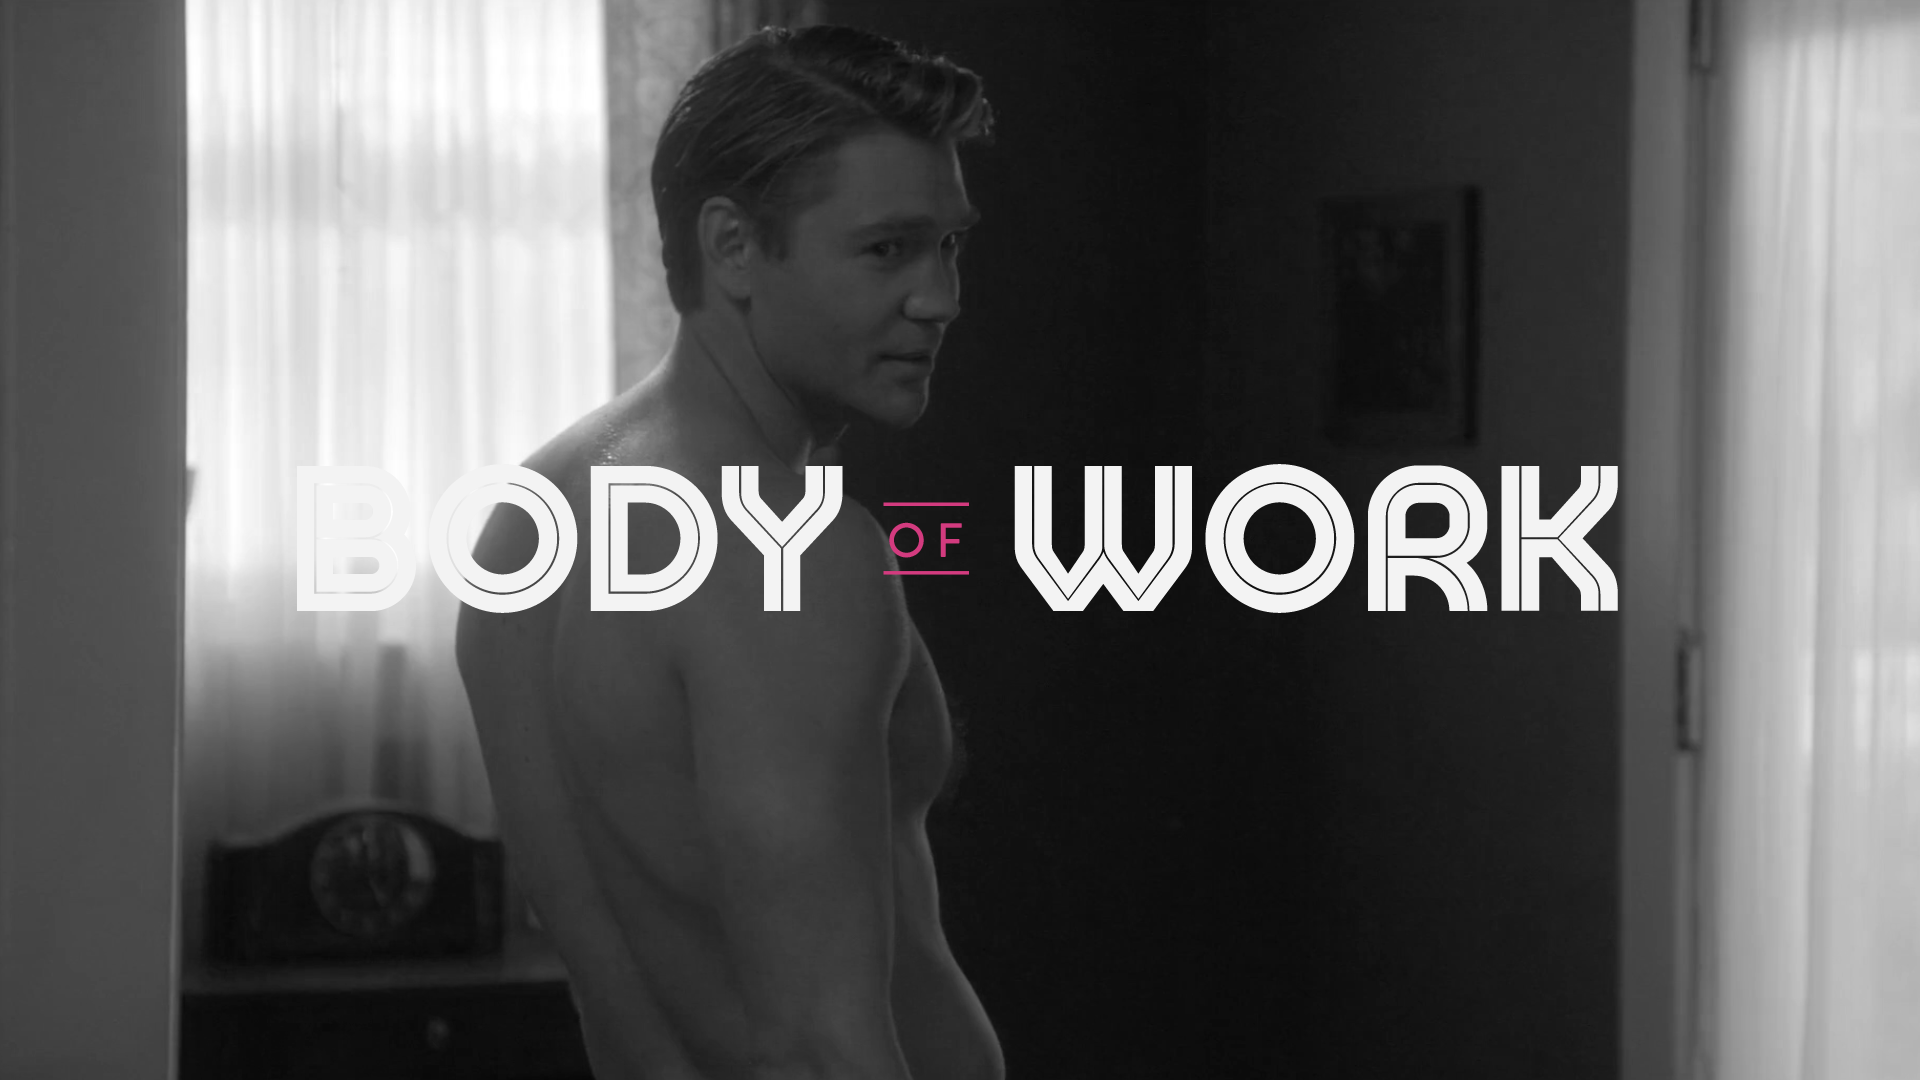 Body of Work: Chad Michael Murray